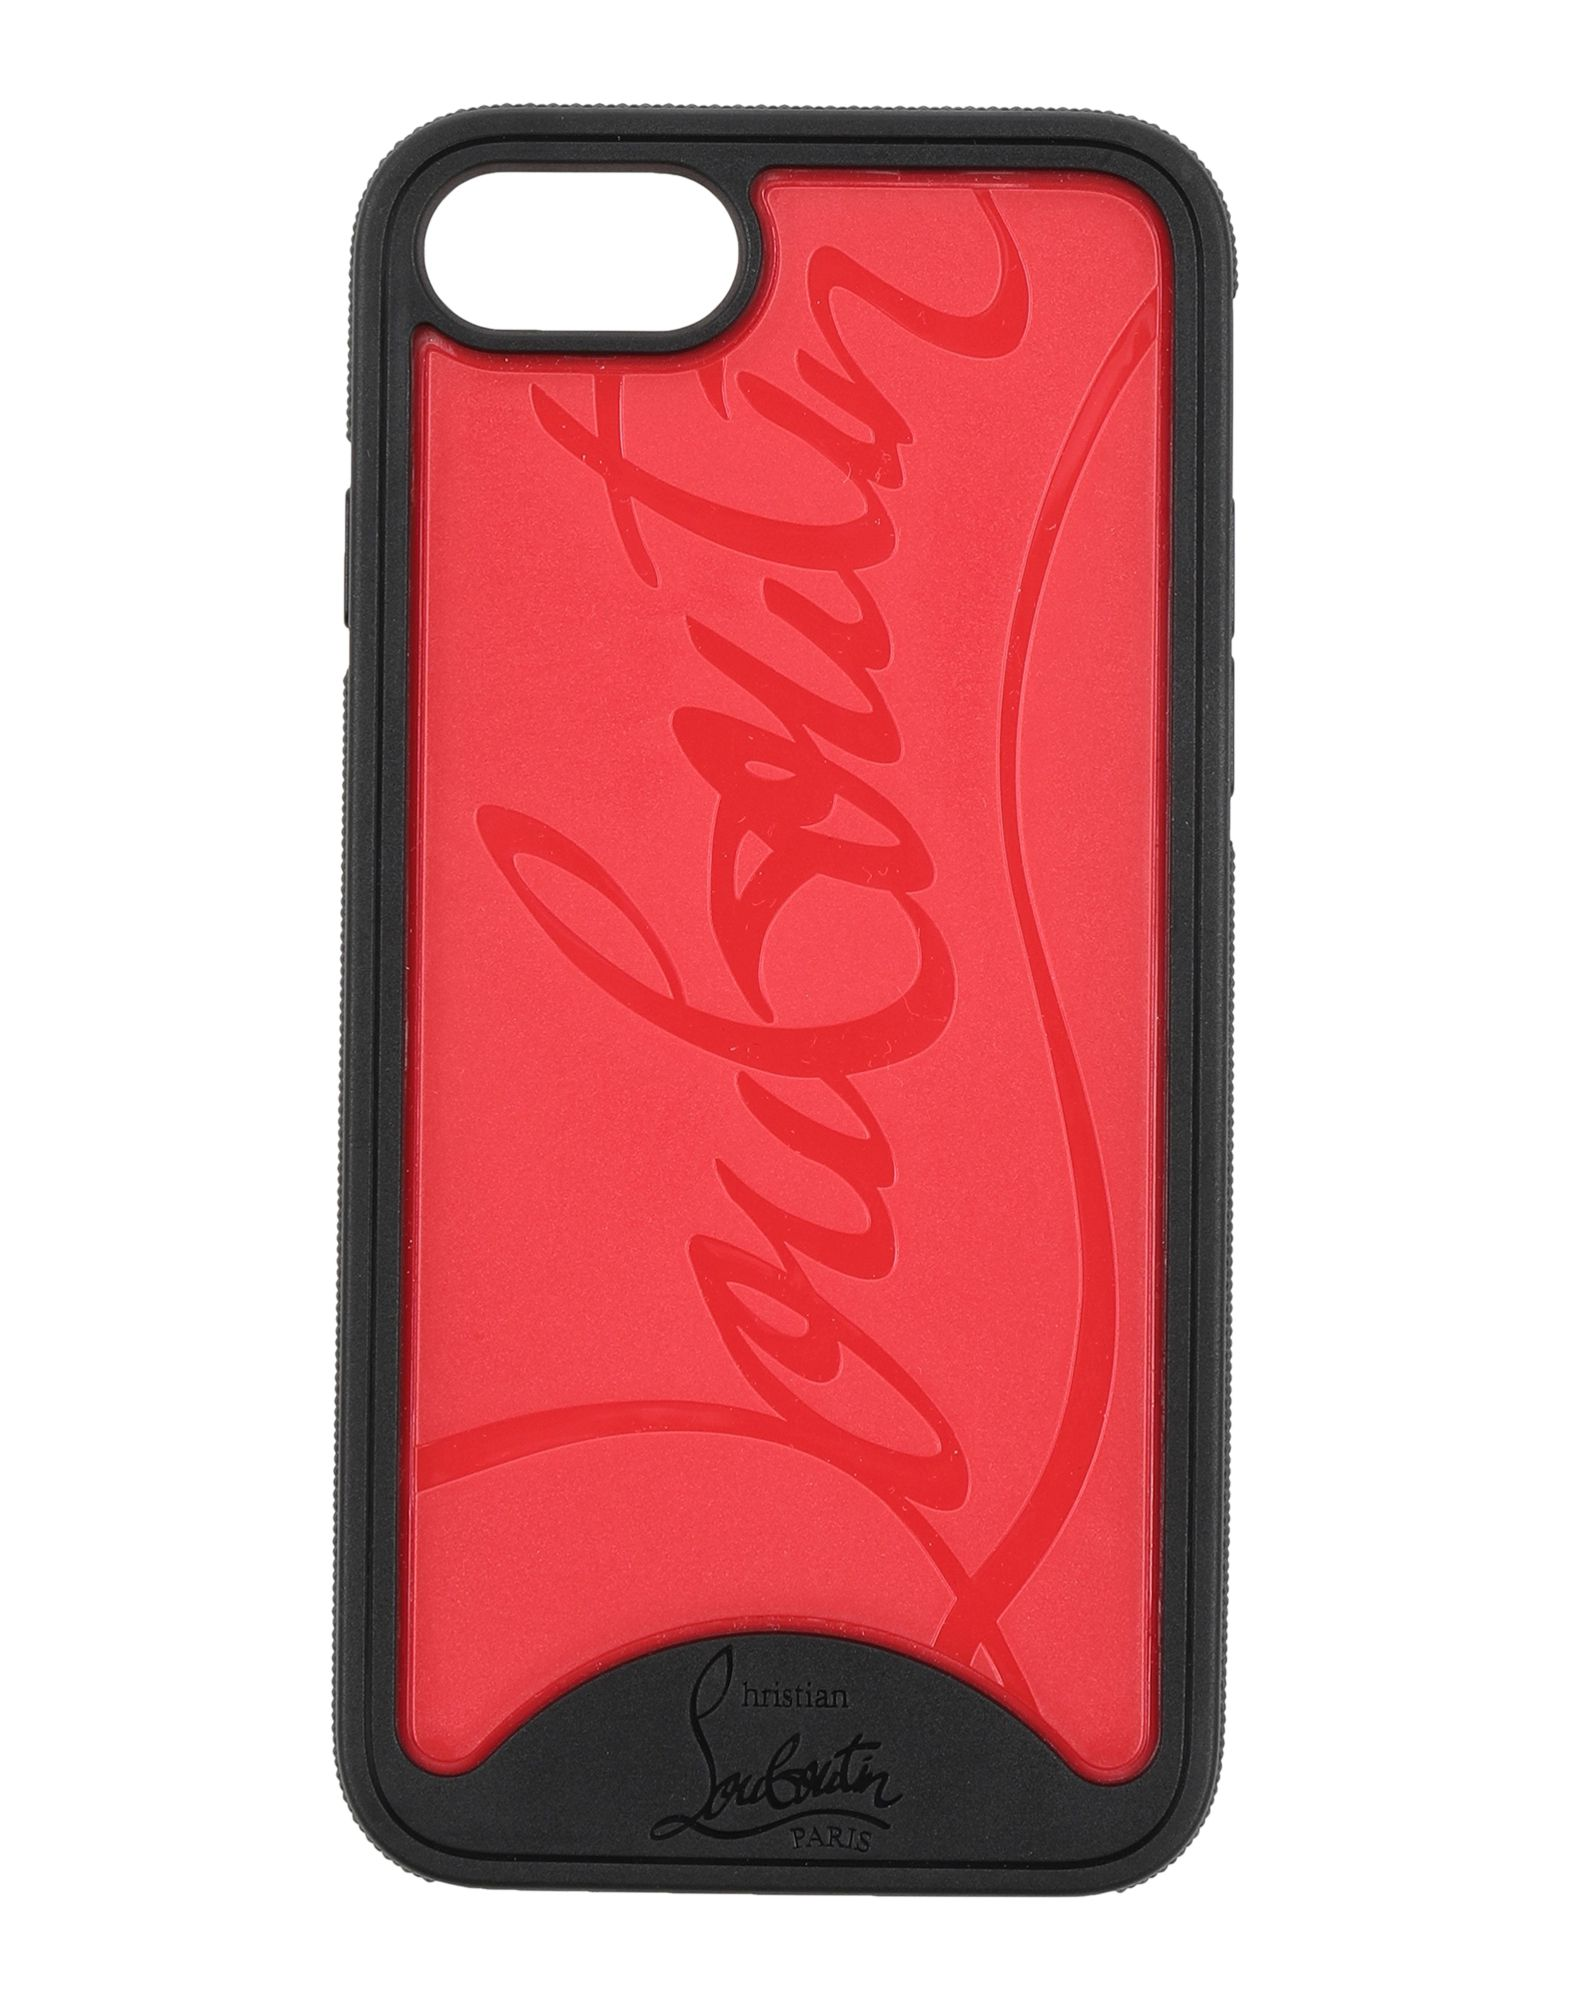 CHRISTIAN LOUBOUTIN Covers & Cases. logo, two-tone, iphone 7 cover. Textile fibers